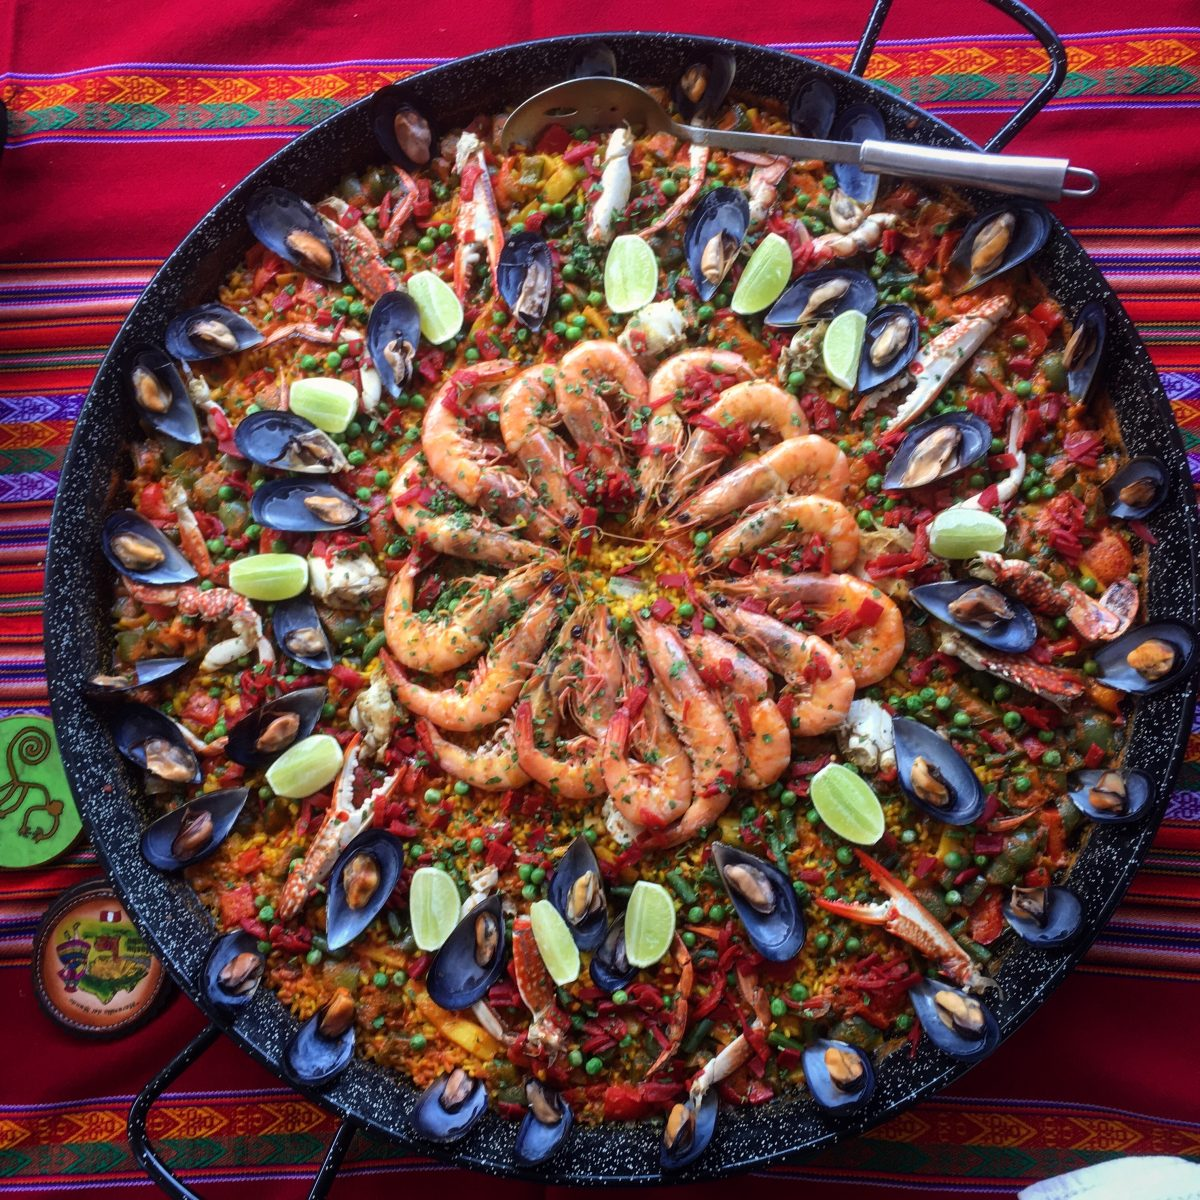 Seafood paella in Sydney